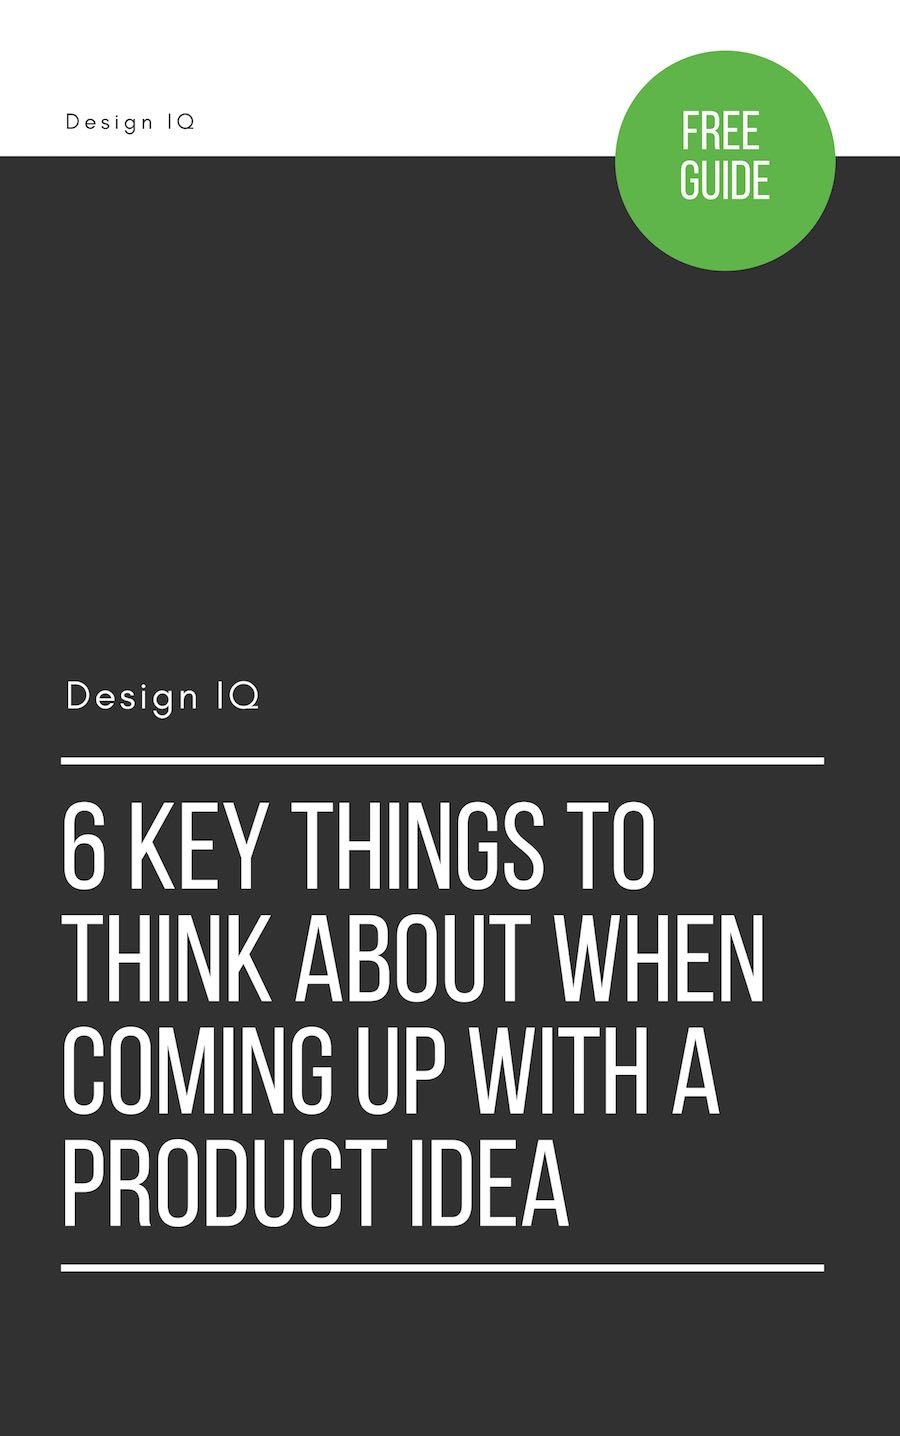 Graphic depicting 6 key product idea things to think about